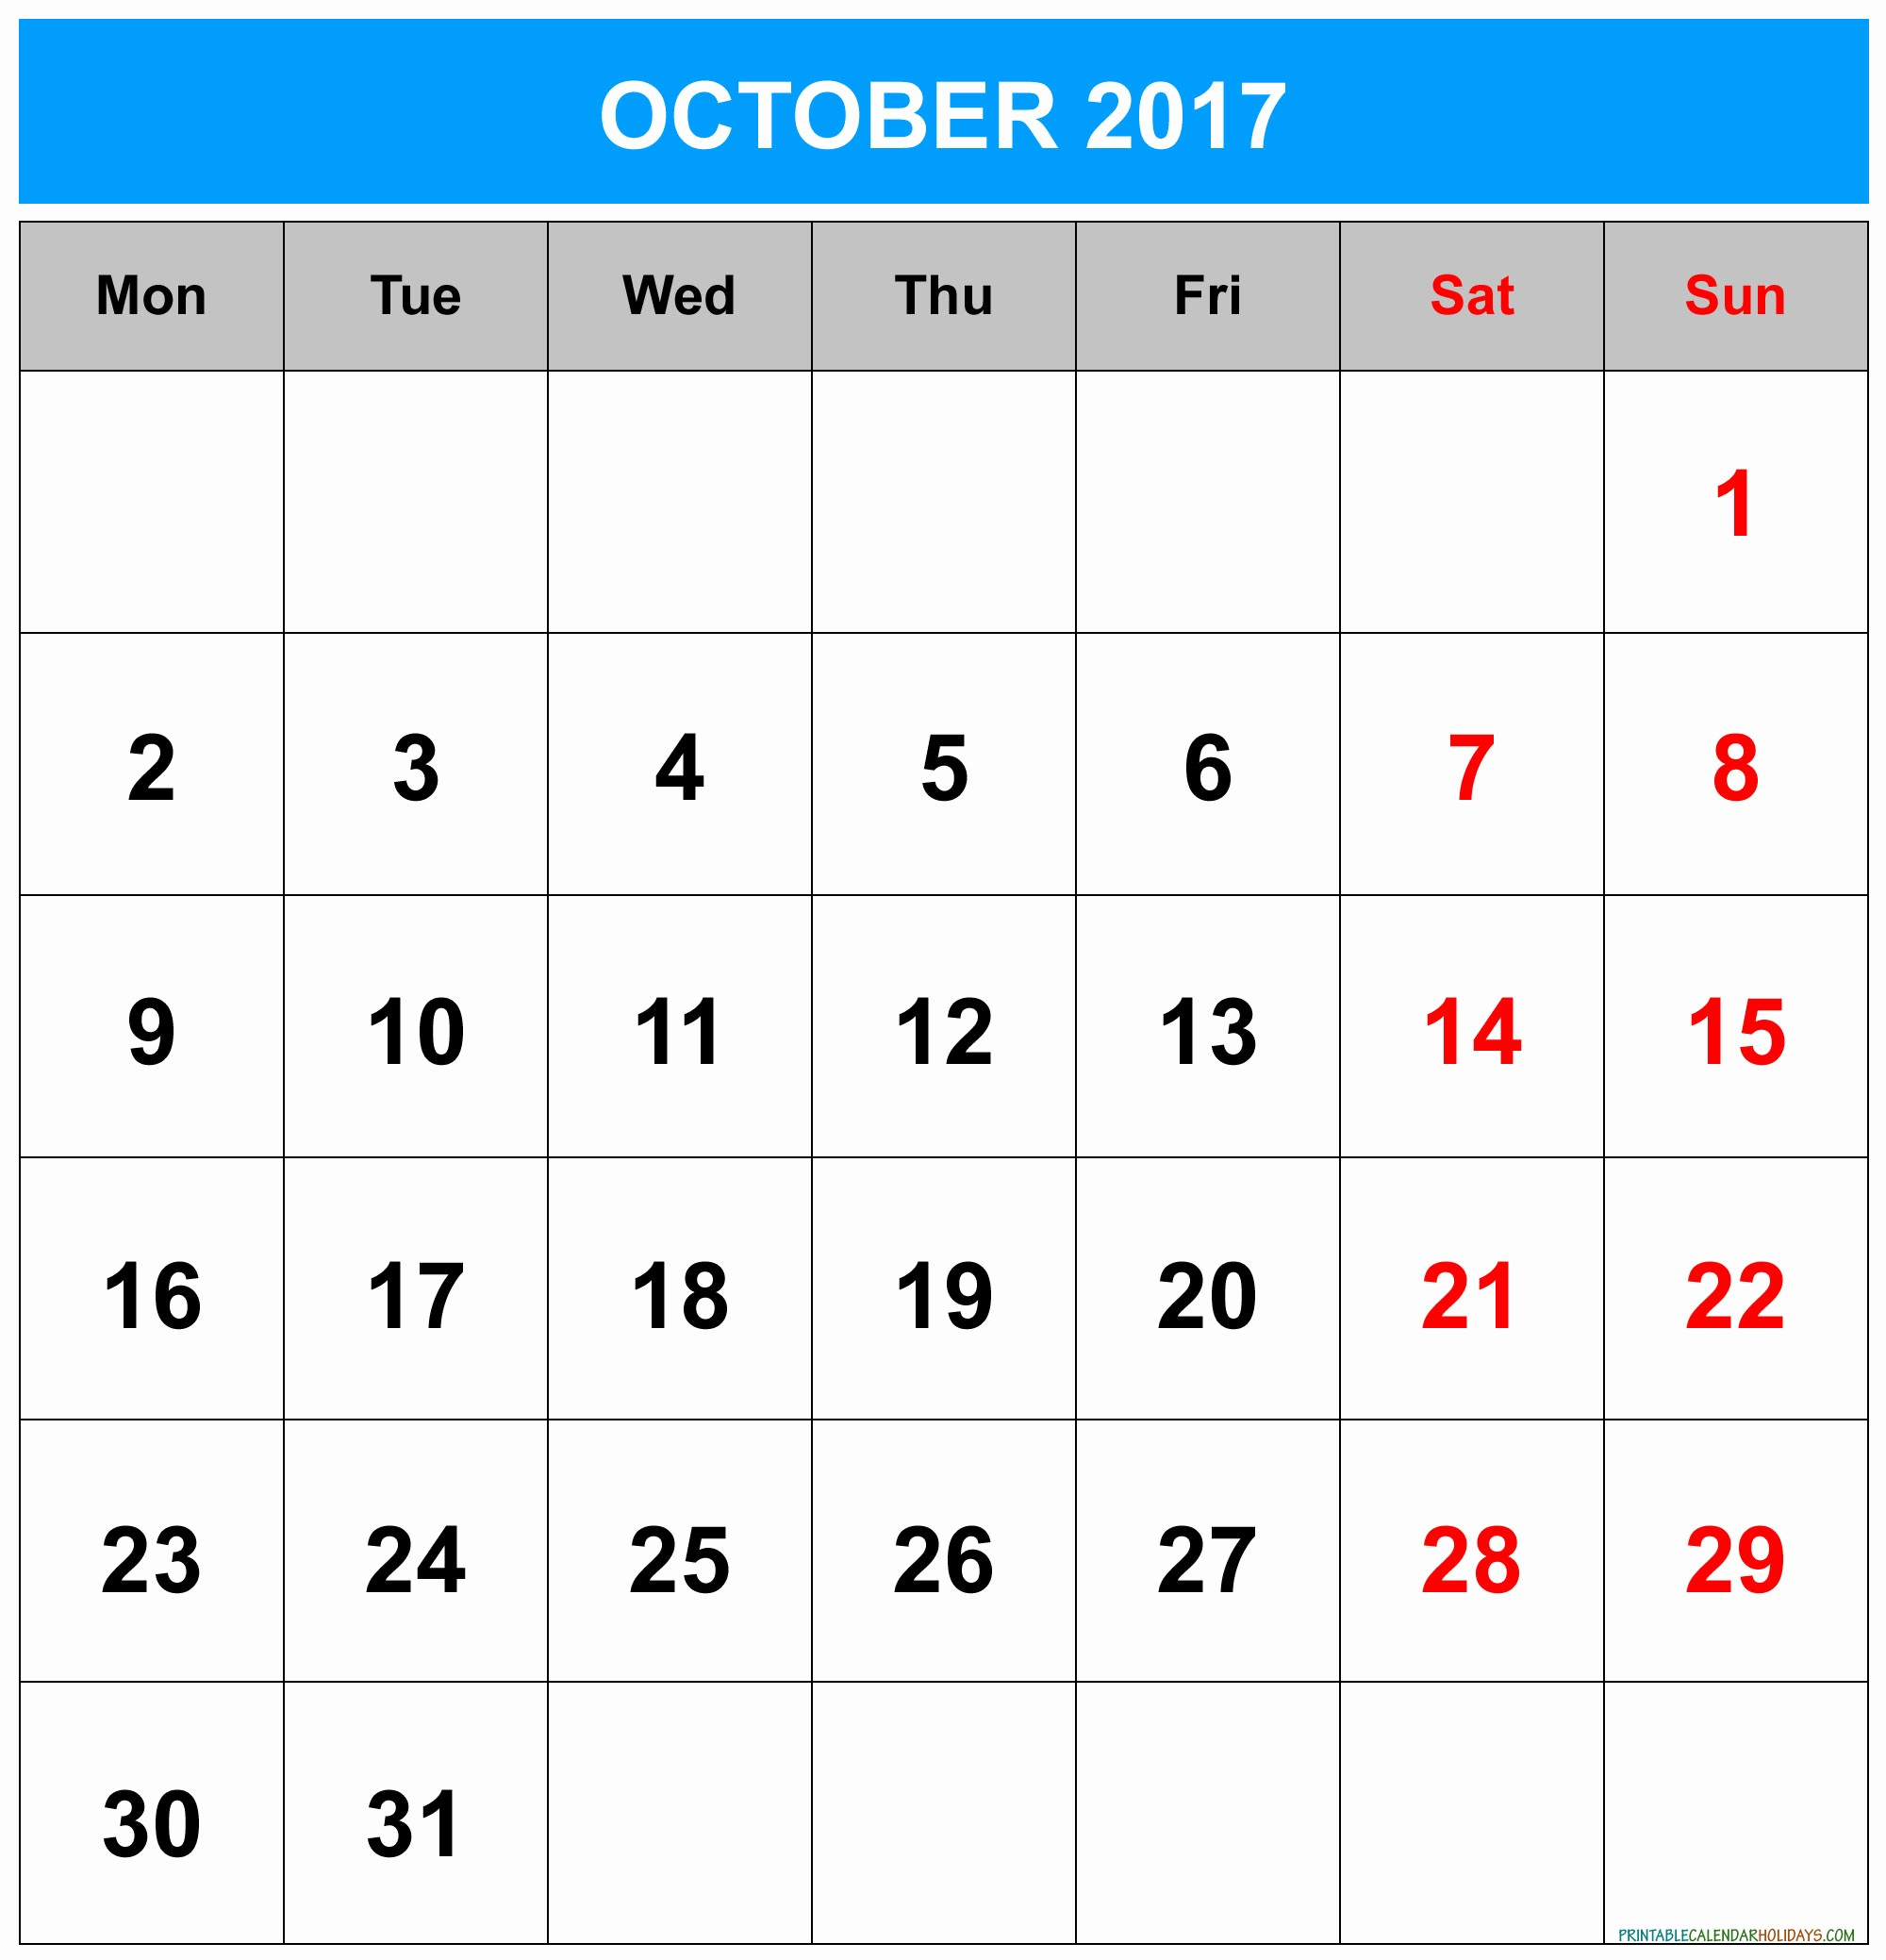 2017 Calendar with Holidays Template Luxury October 2017 Calendar with Holidays